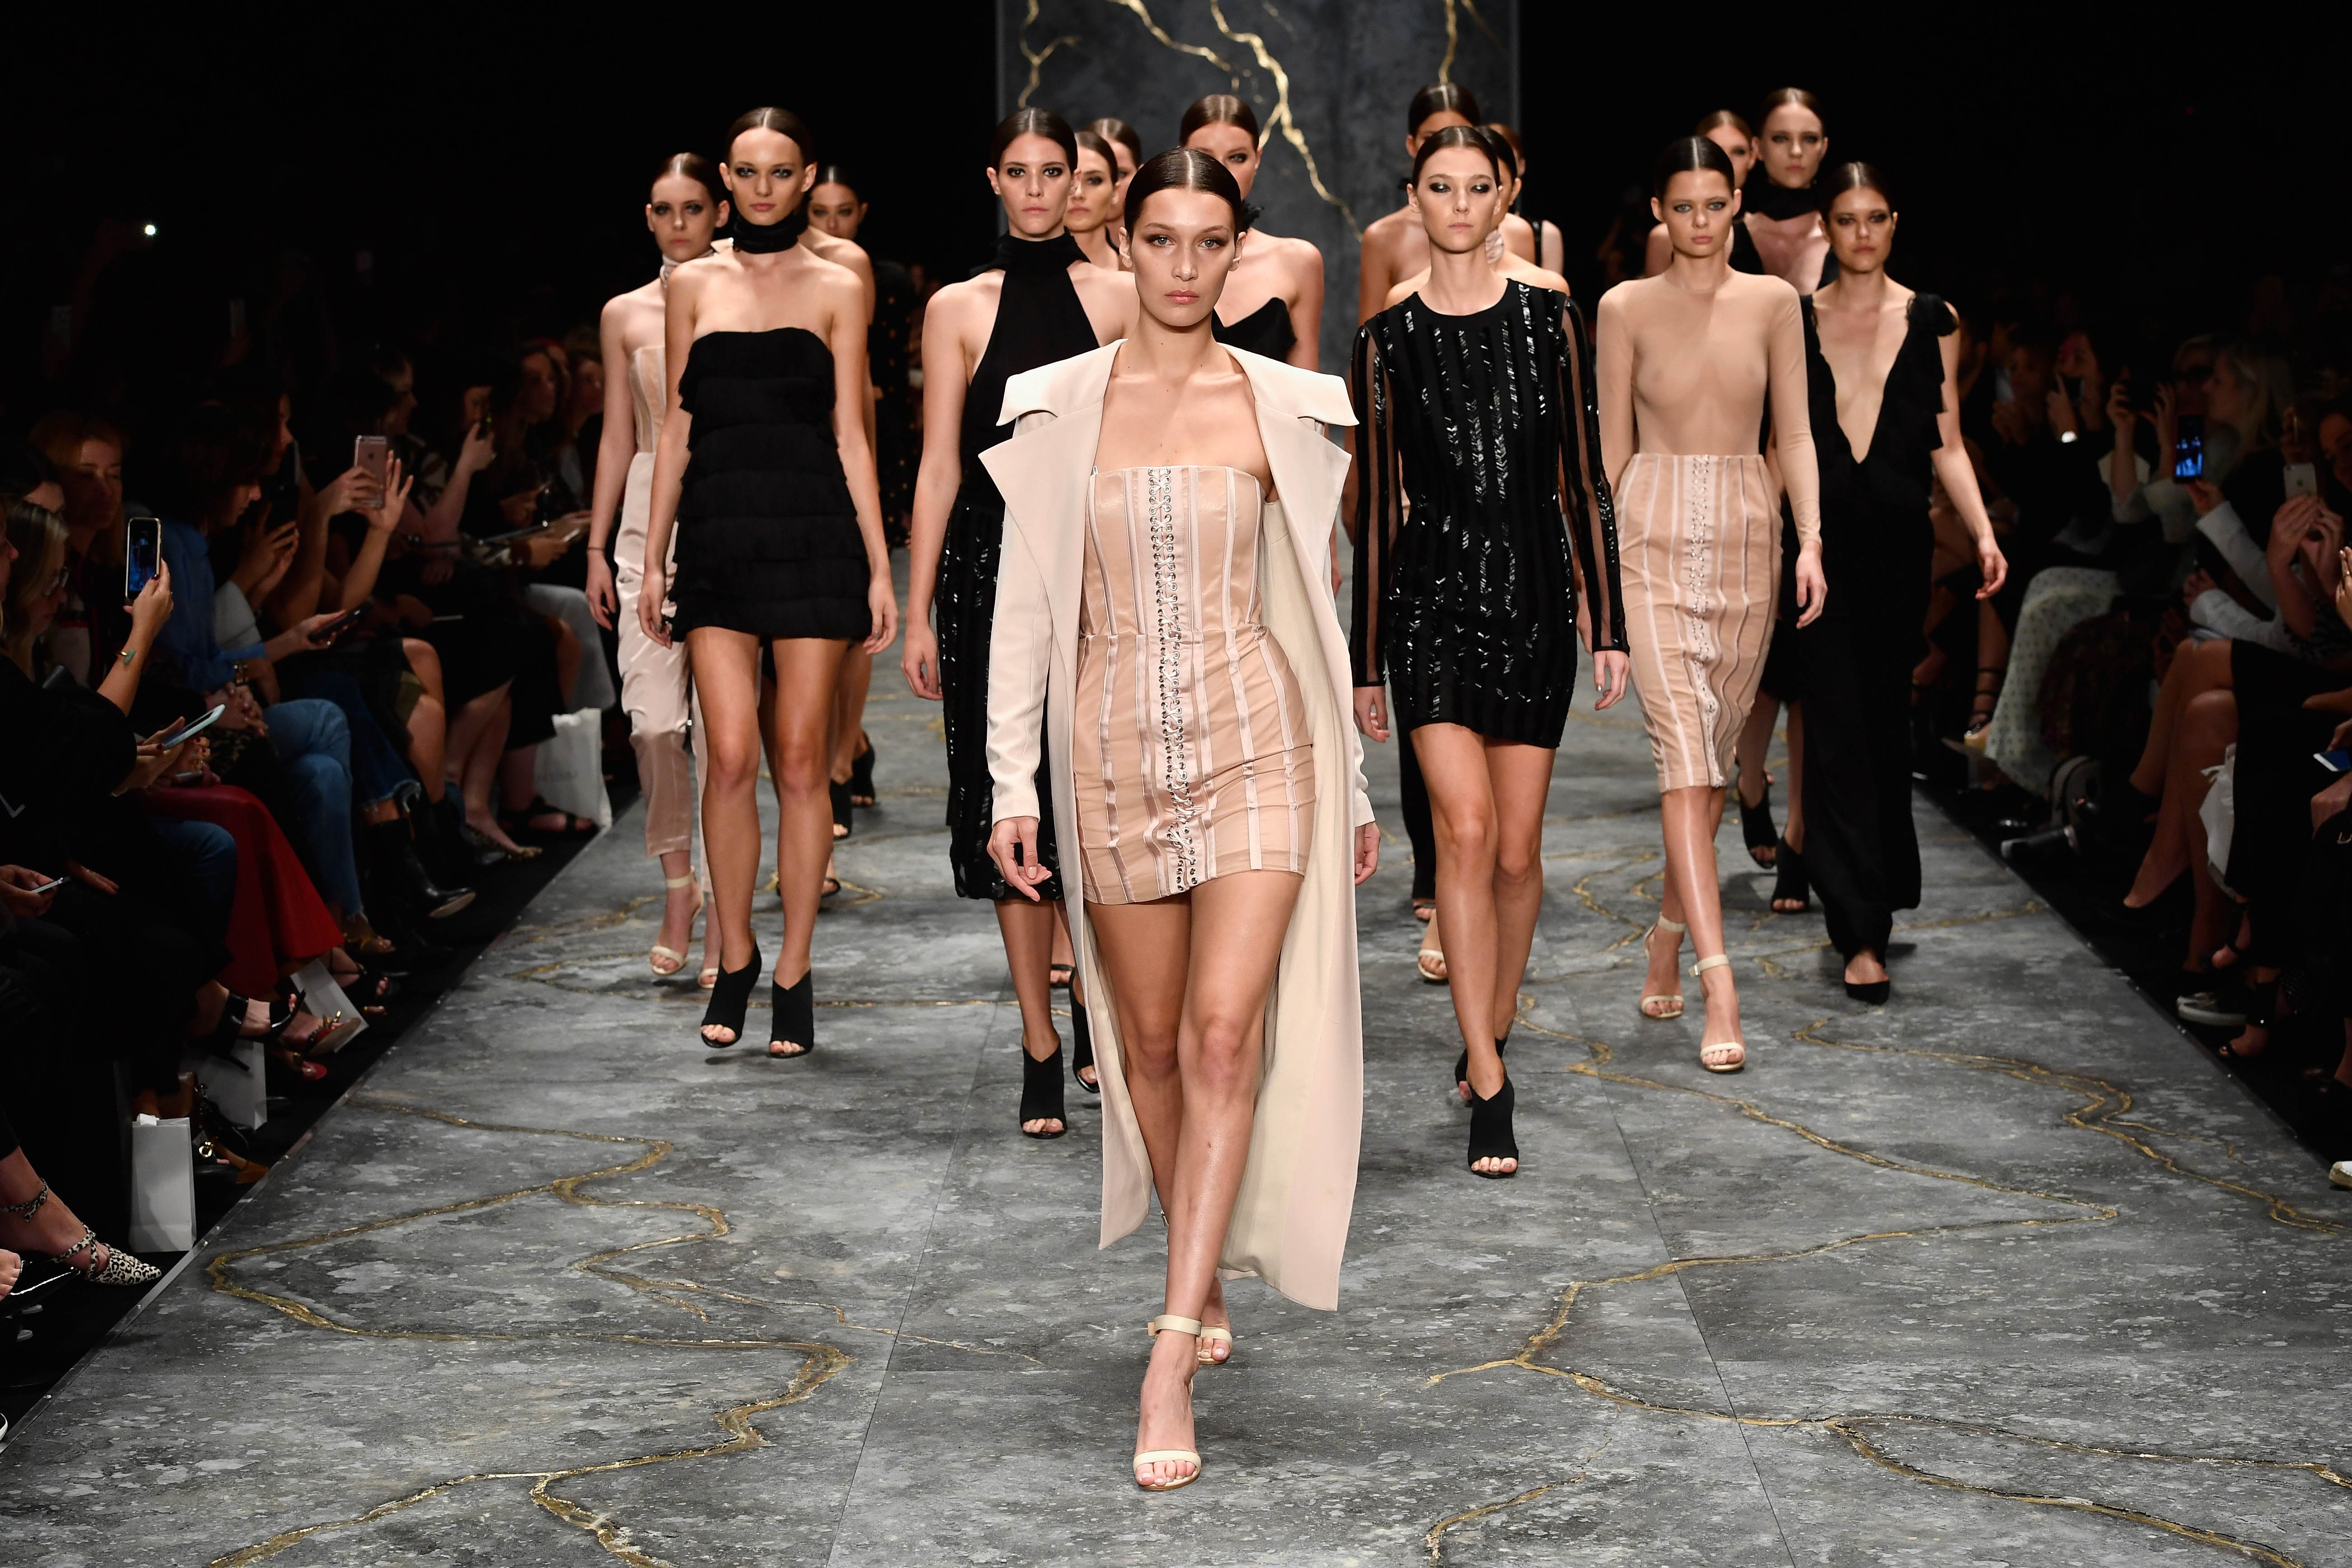 SYDNEY, AUSTRALIA - MAY 16: Model Bella Hadid leads models as they walk the runway during the Misha Collection...